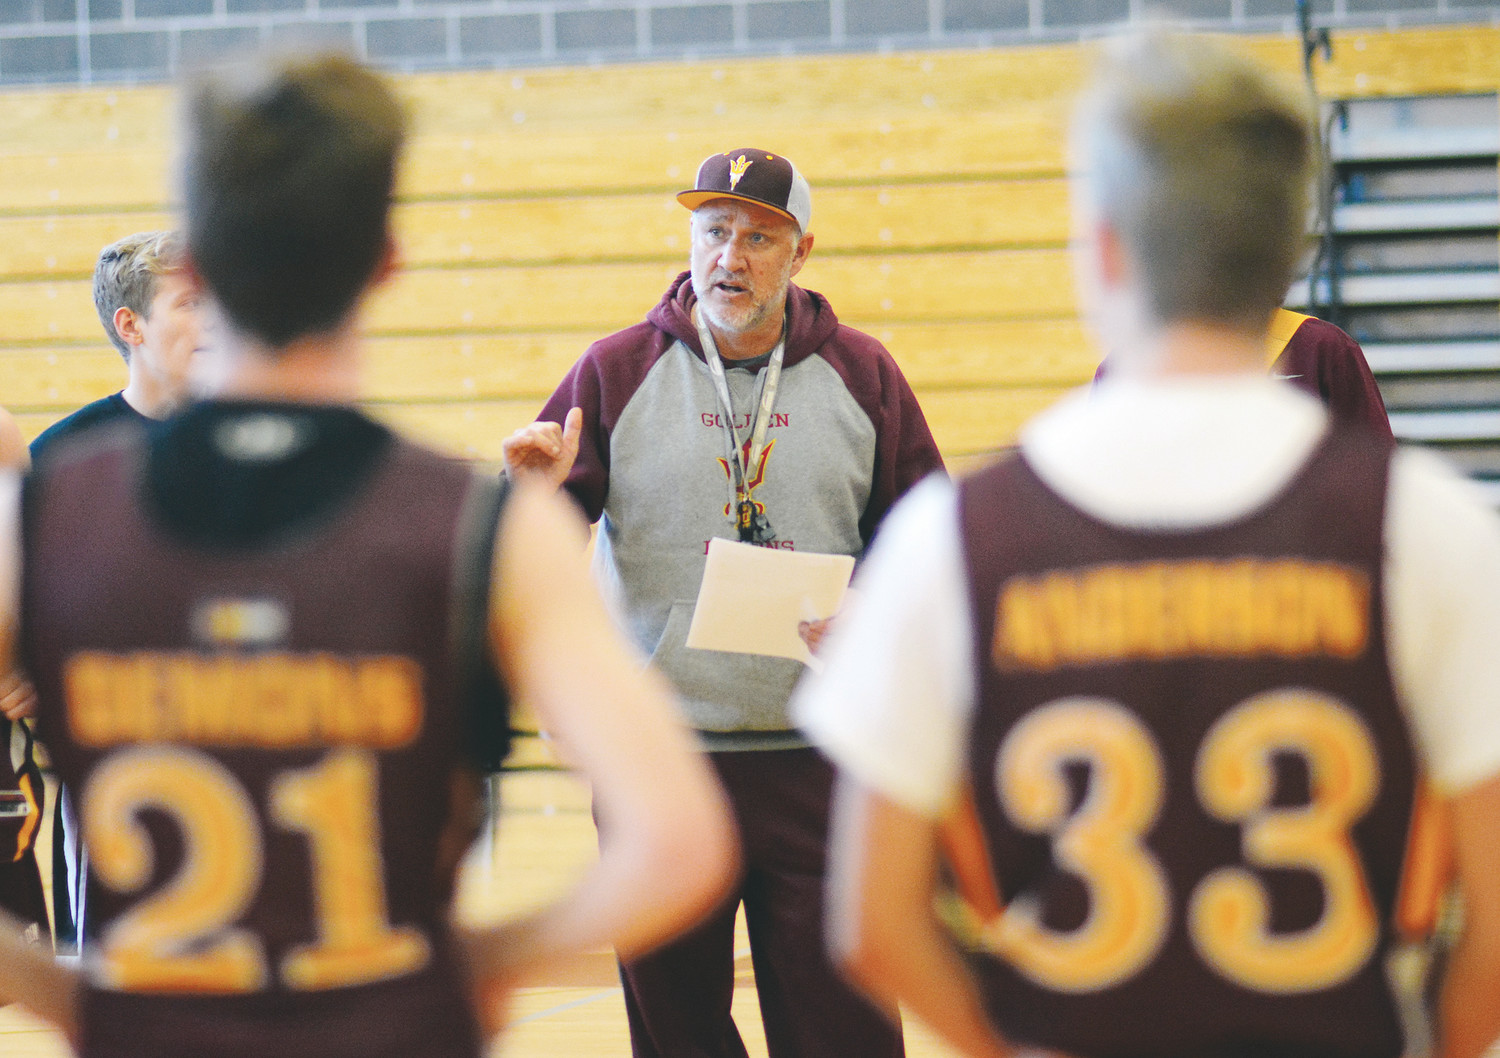 Golden boys basketball coach John Anderson has high expectations for this hoops season. The Demons graduated just one senior from last year's Class 4A state Final 4 team. Golden opens with three home games during the D'Evelyn/Golden Preview Classic that starts Thursday, Nov. 30.